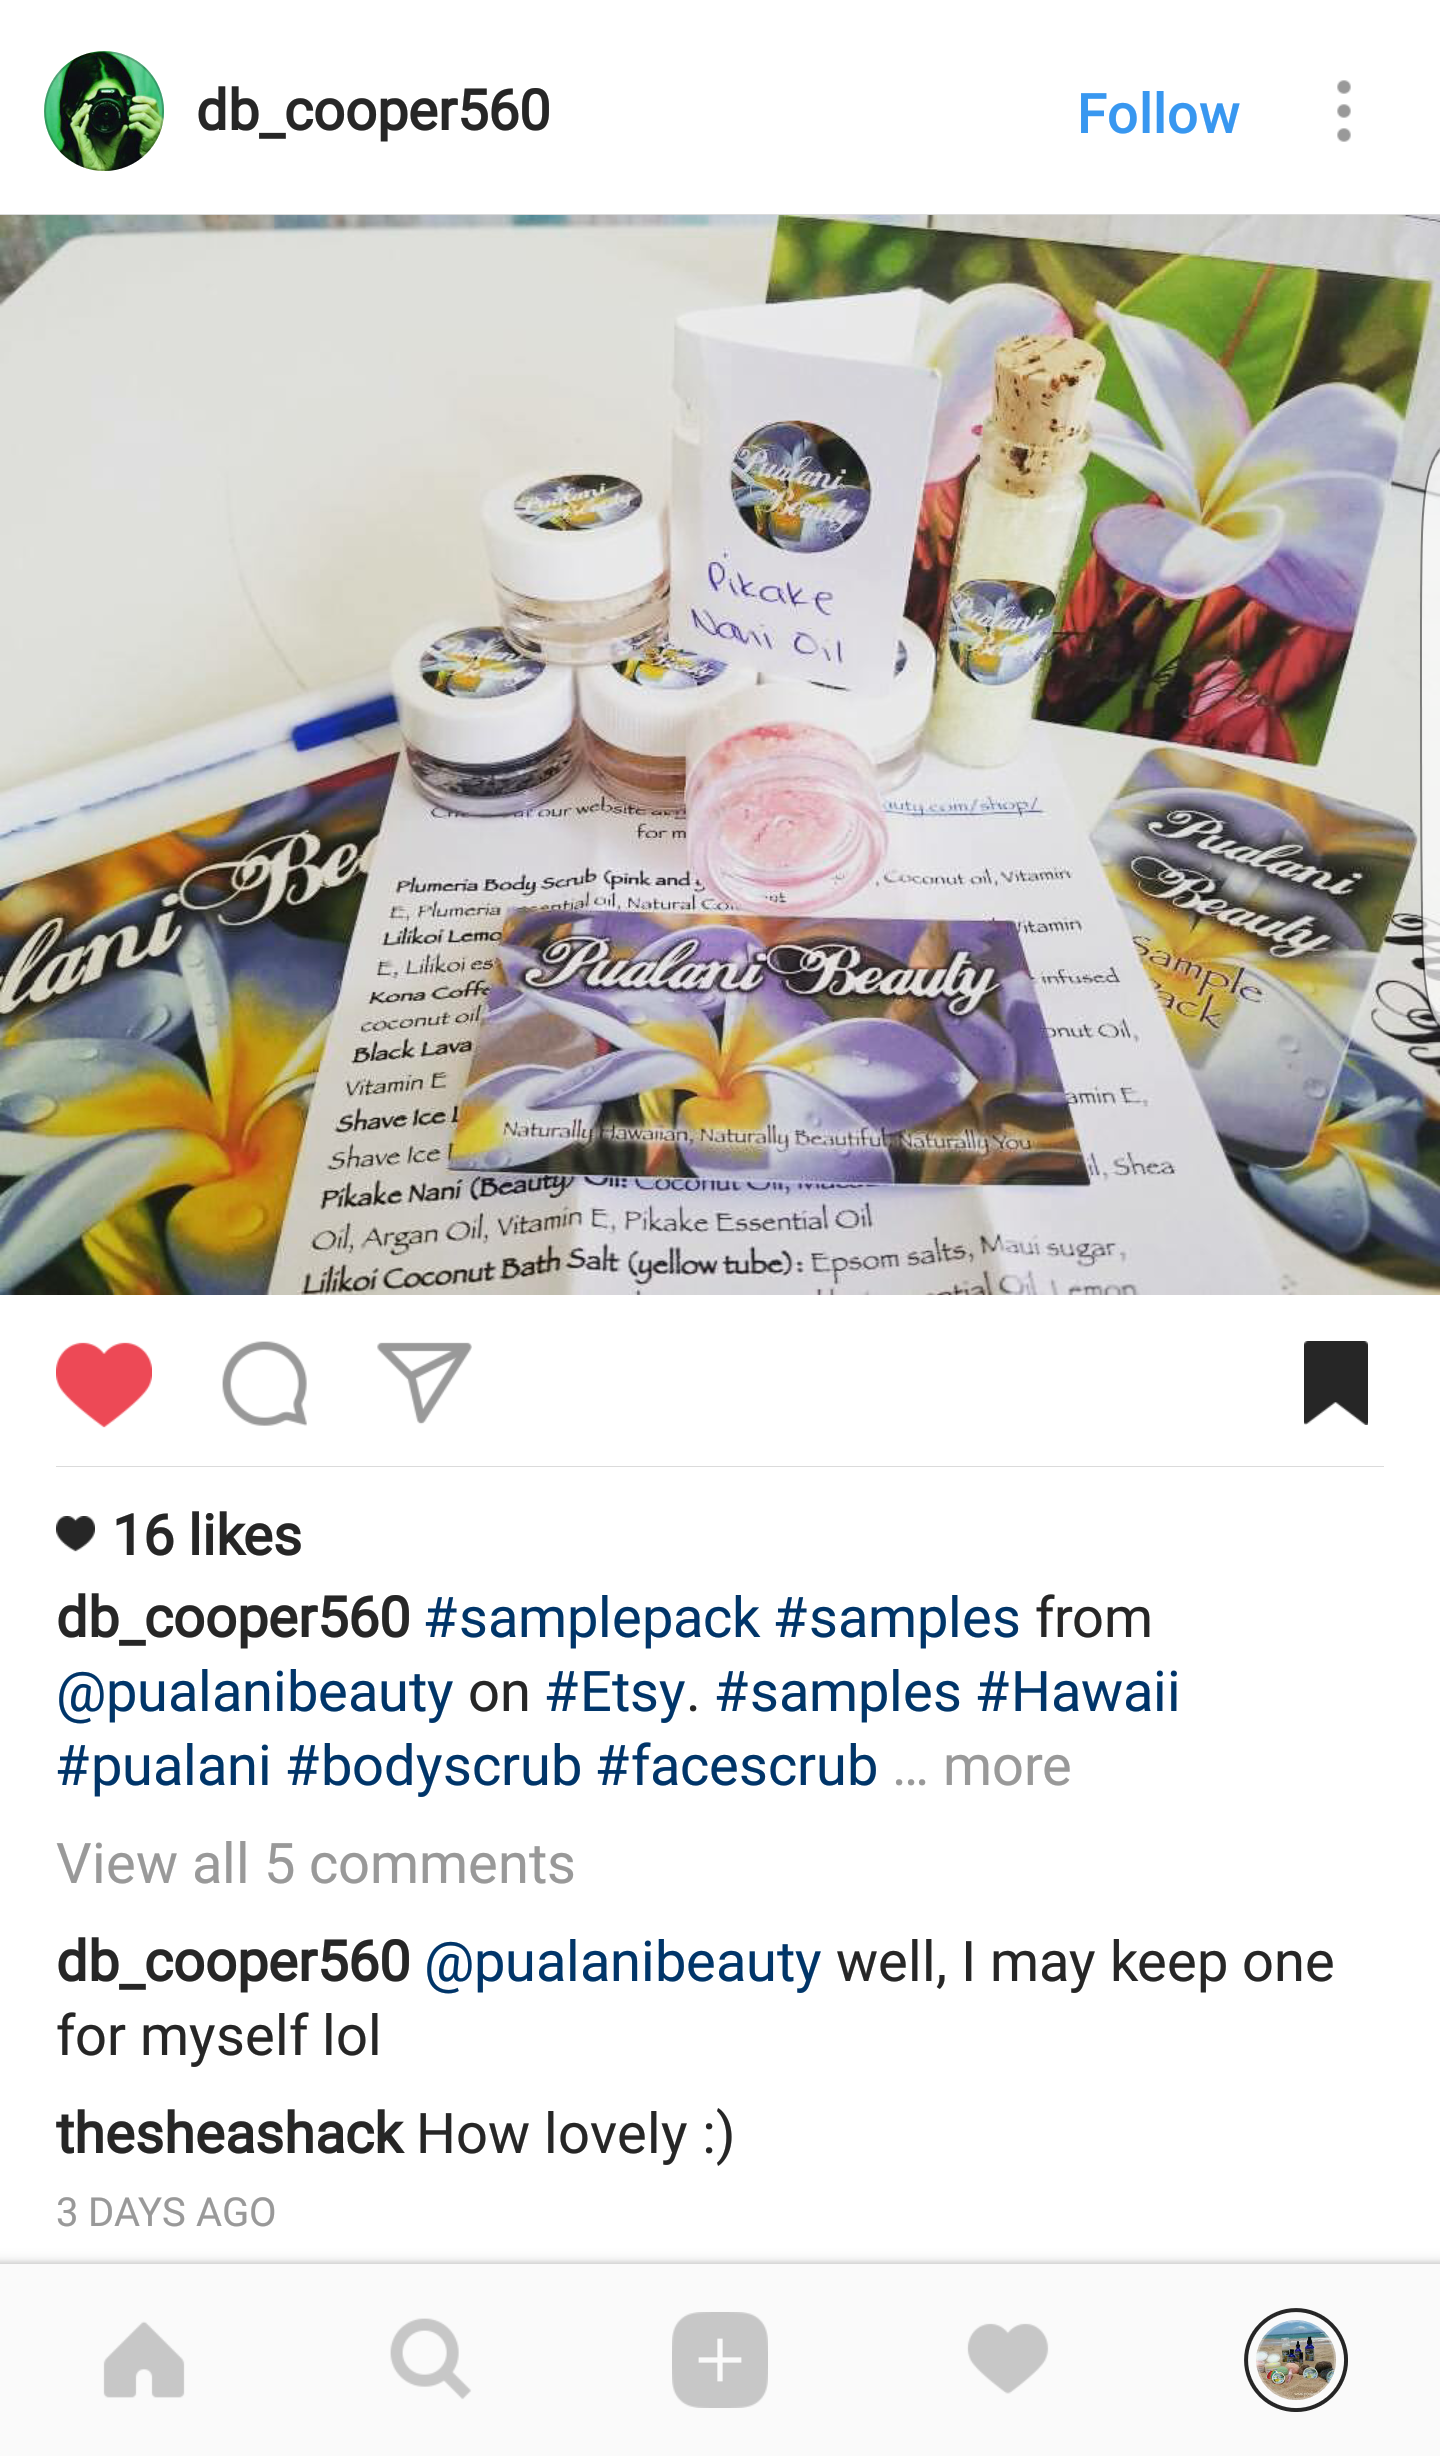 Mahalo @db_cooper560 for the shoutout, we love seeing the new home our products travel to!